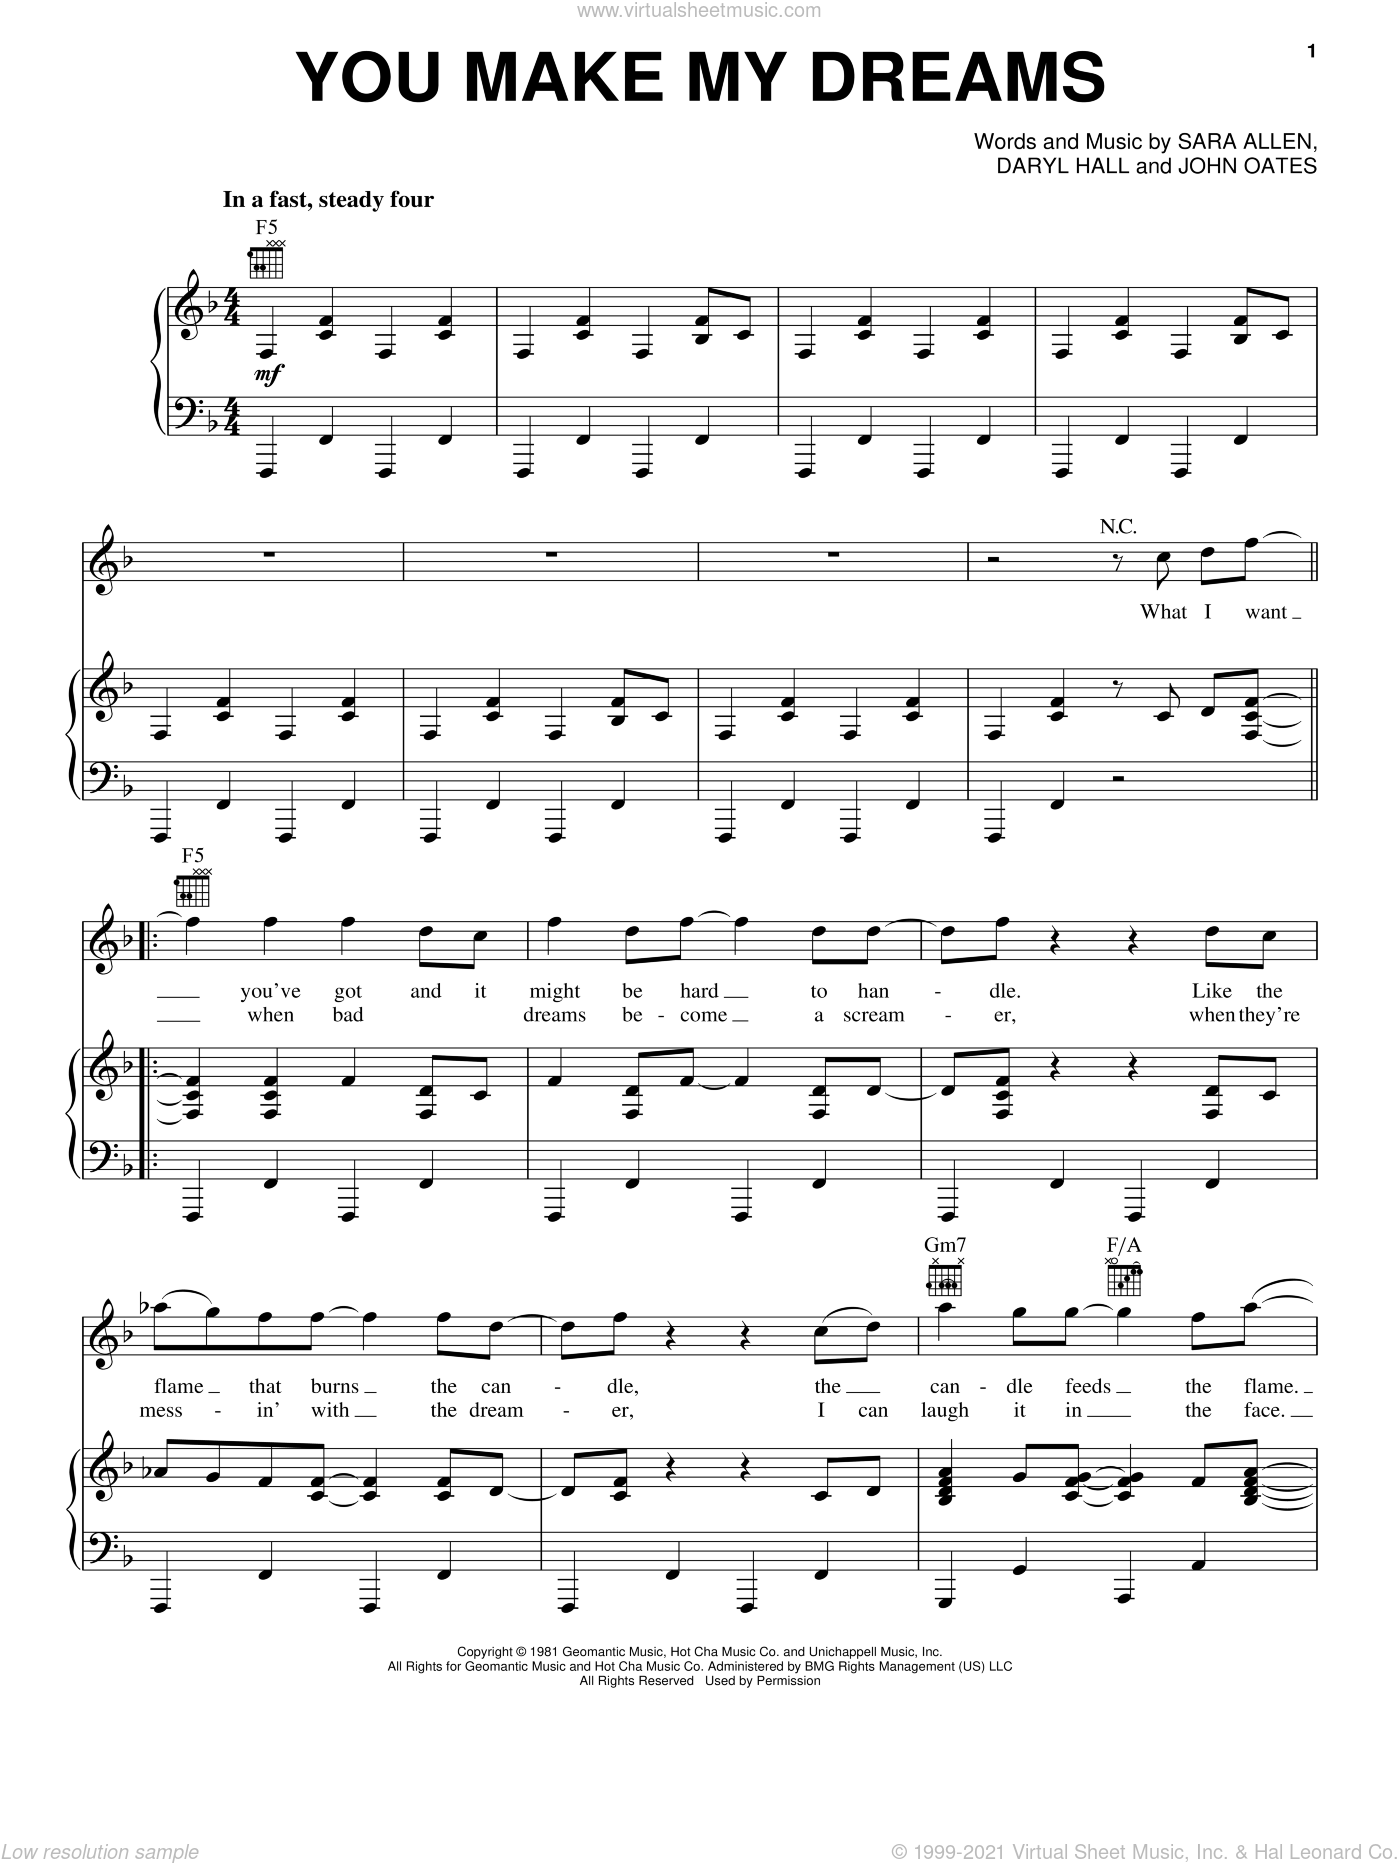 You Make My Dreams sheet music for voice, piano or guitar by Hall and Oates, Daryl Hall & John Oates, Daryl Hall, John Oates and Sara Allen, intermediate